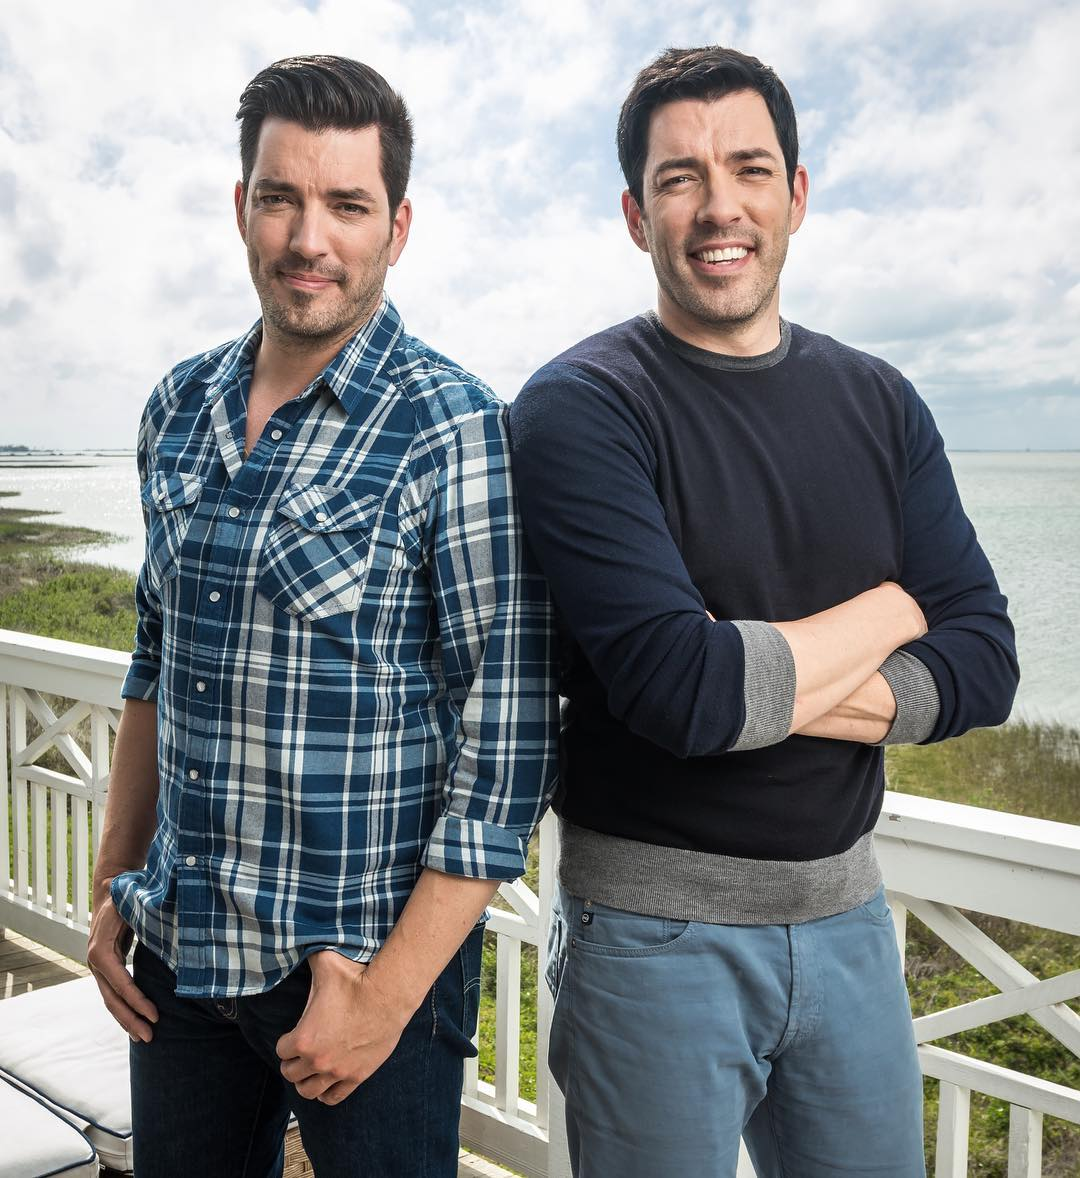 Property Brothers stars Jonathan Scott and Drew Scott